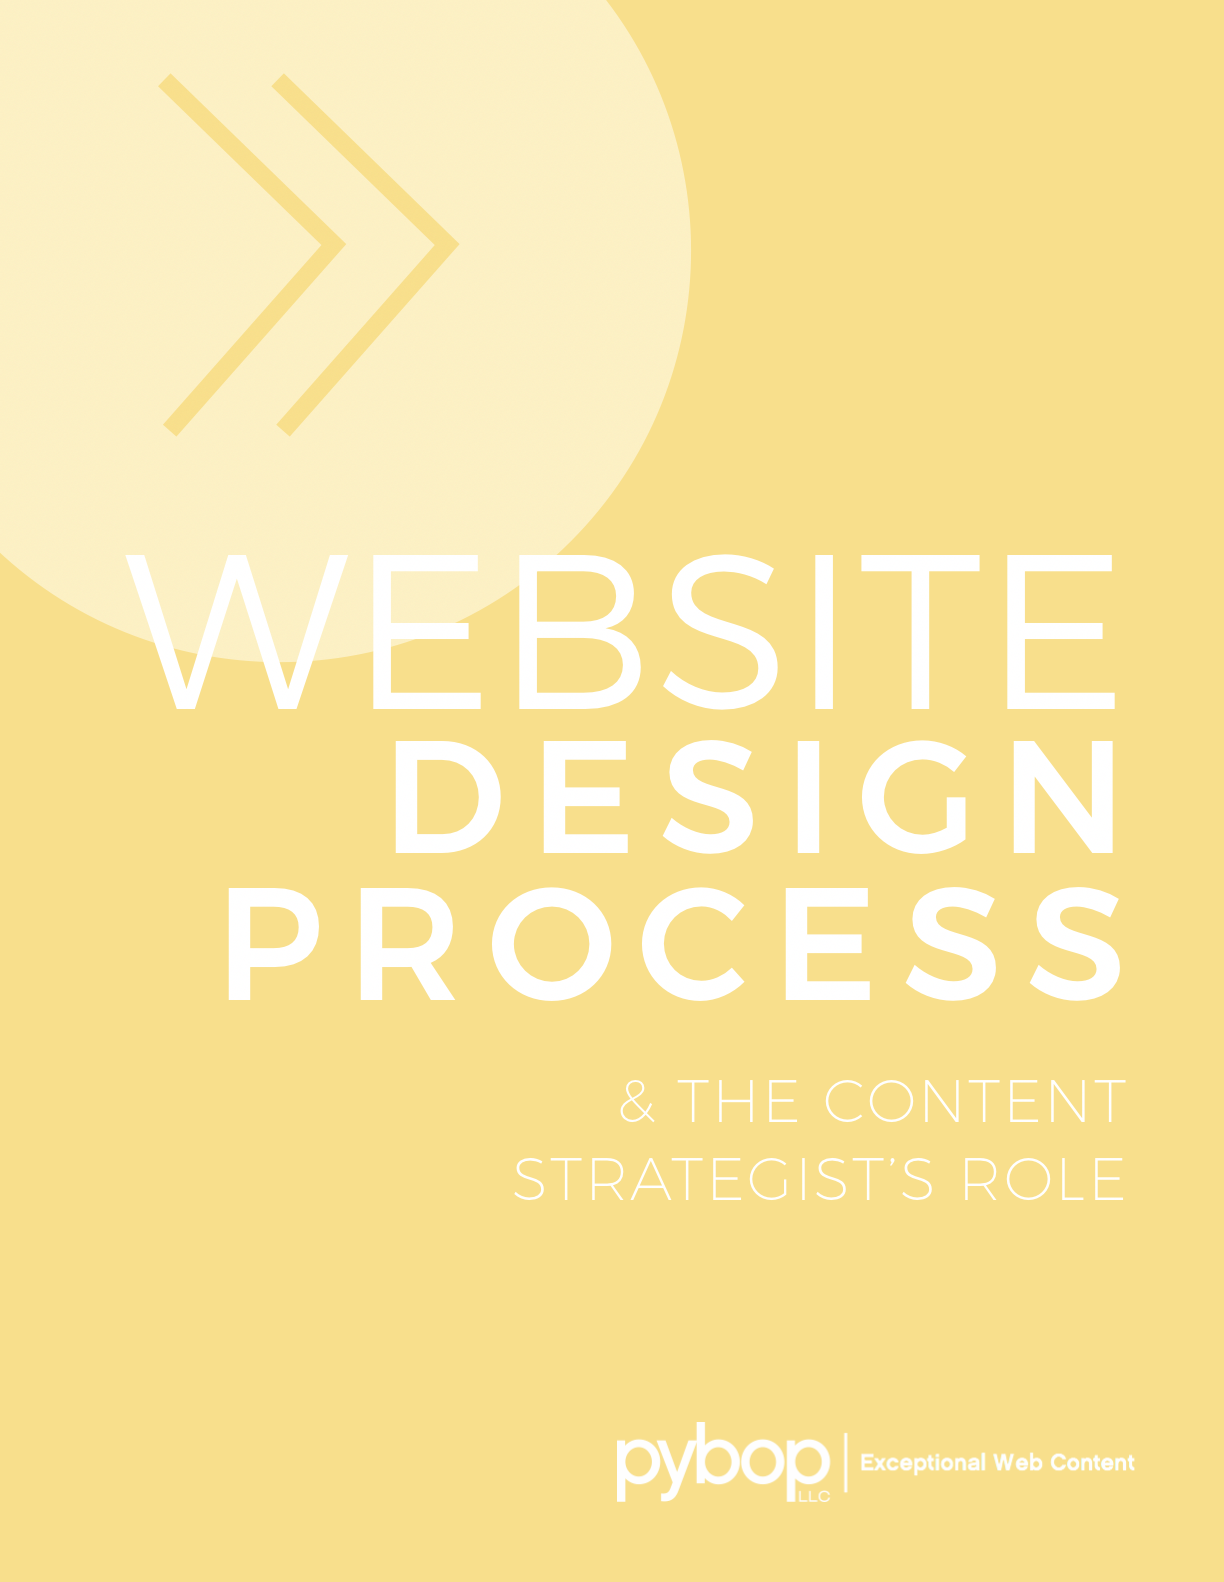 Where does content strategy fit in to a website design process?